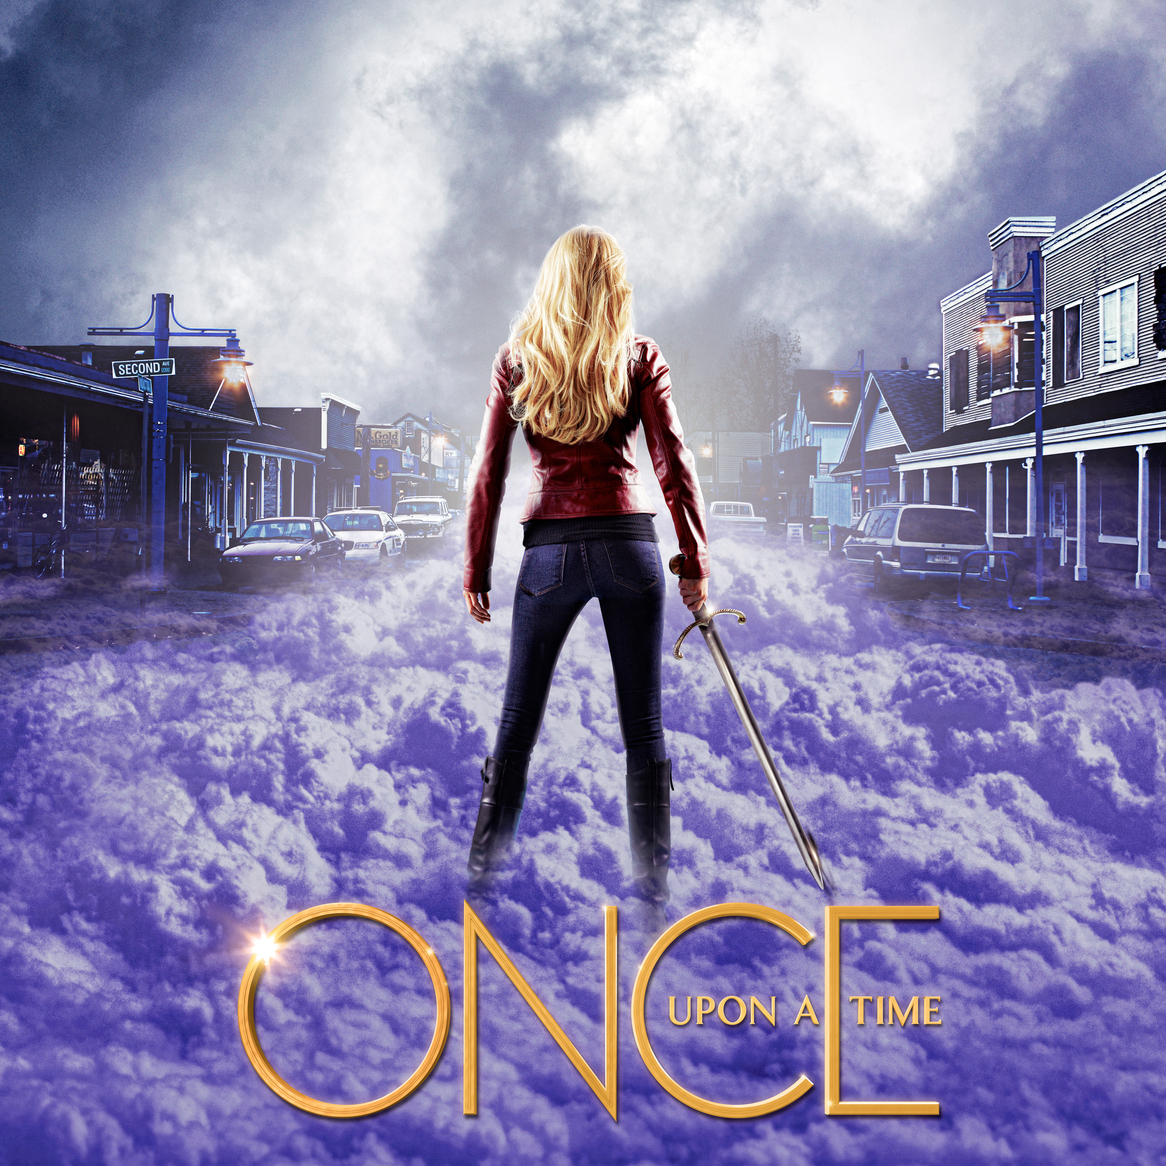 """Once Upon a Time"" Season Two promo poster."